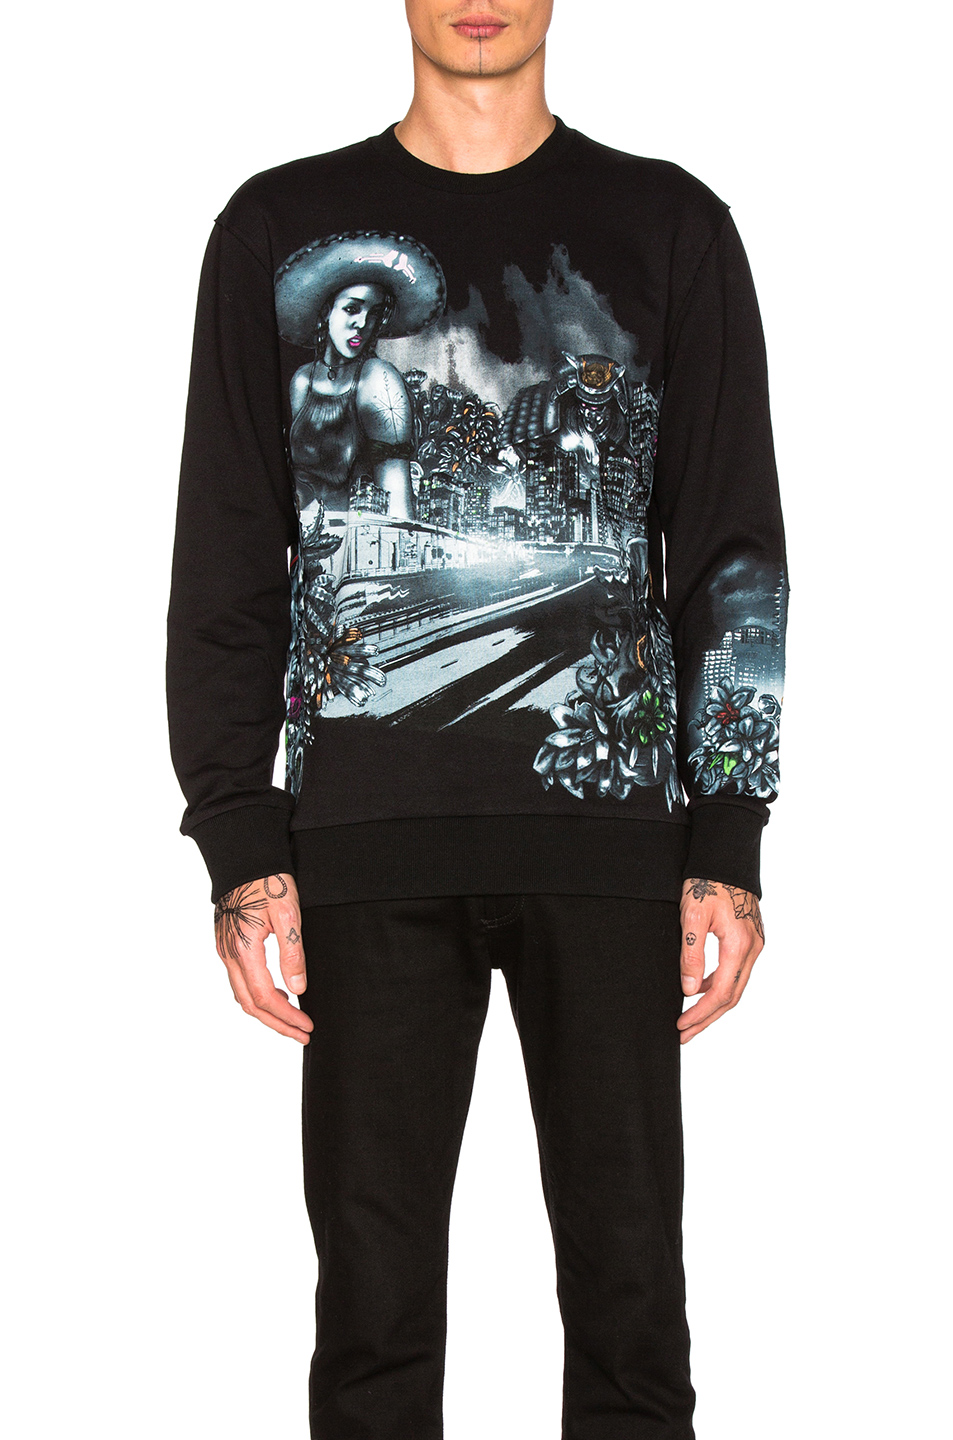 Lanvin Graphic Sweatshirt in Black